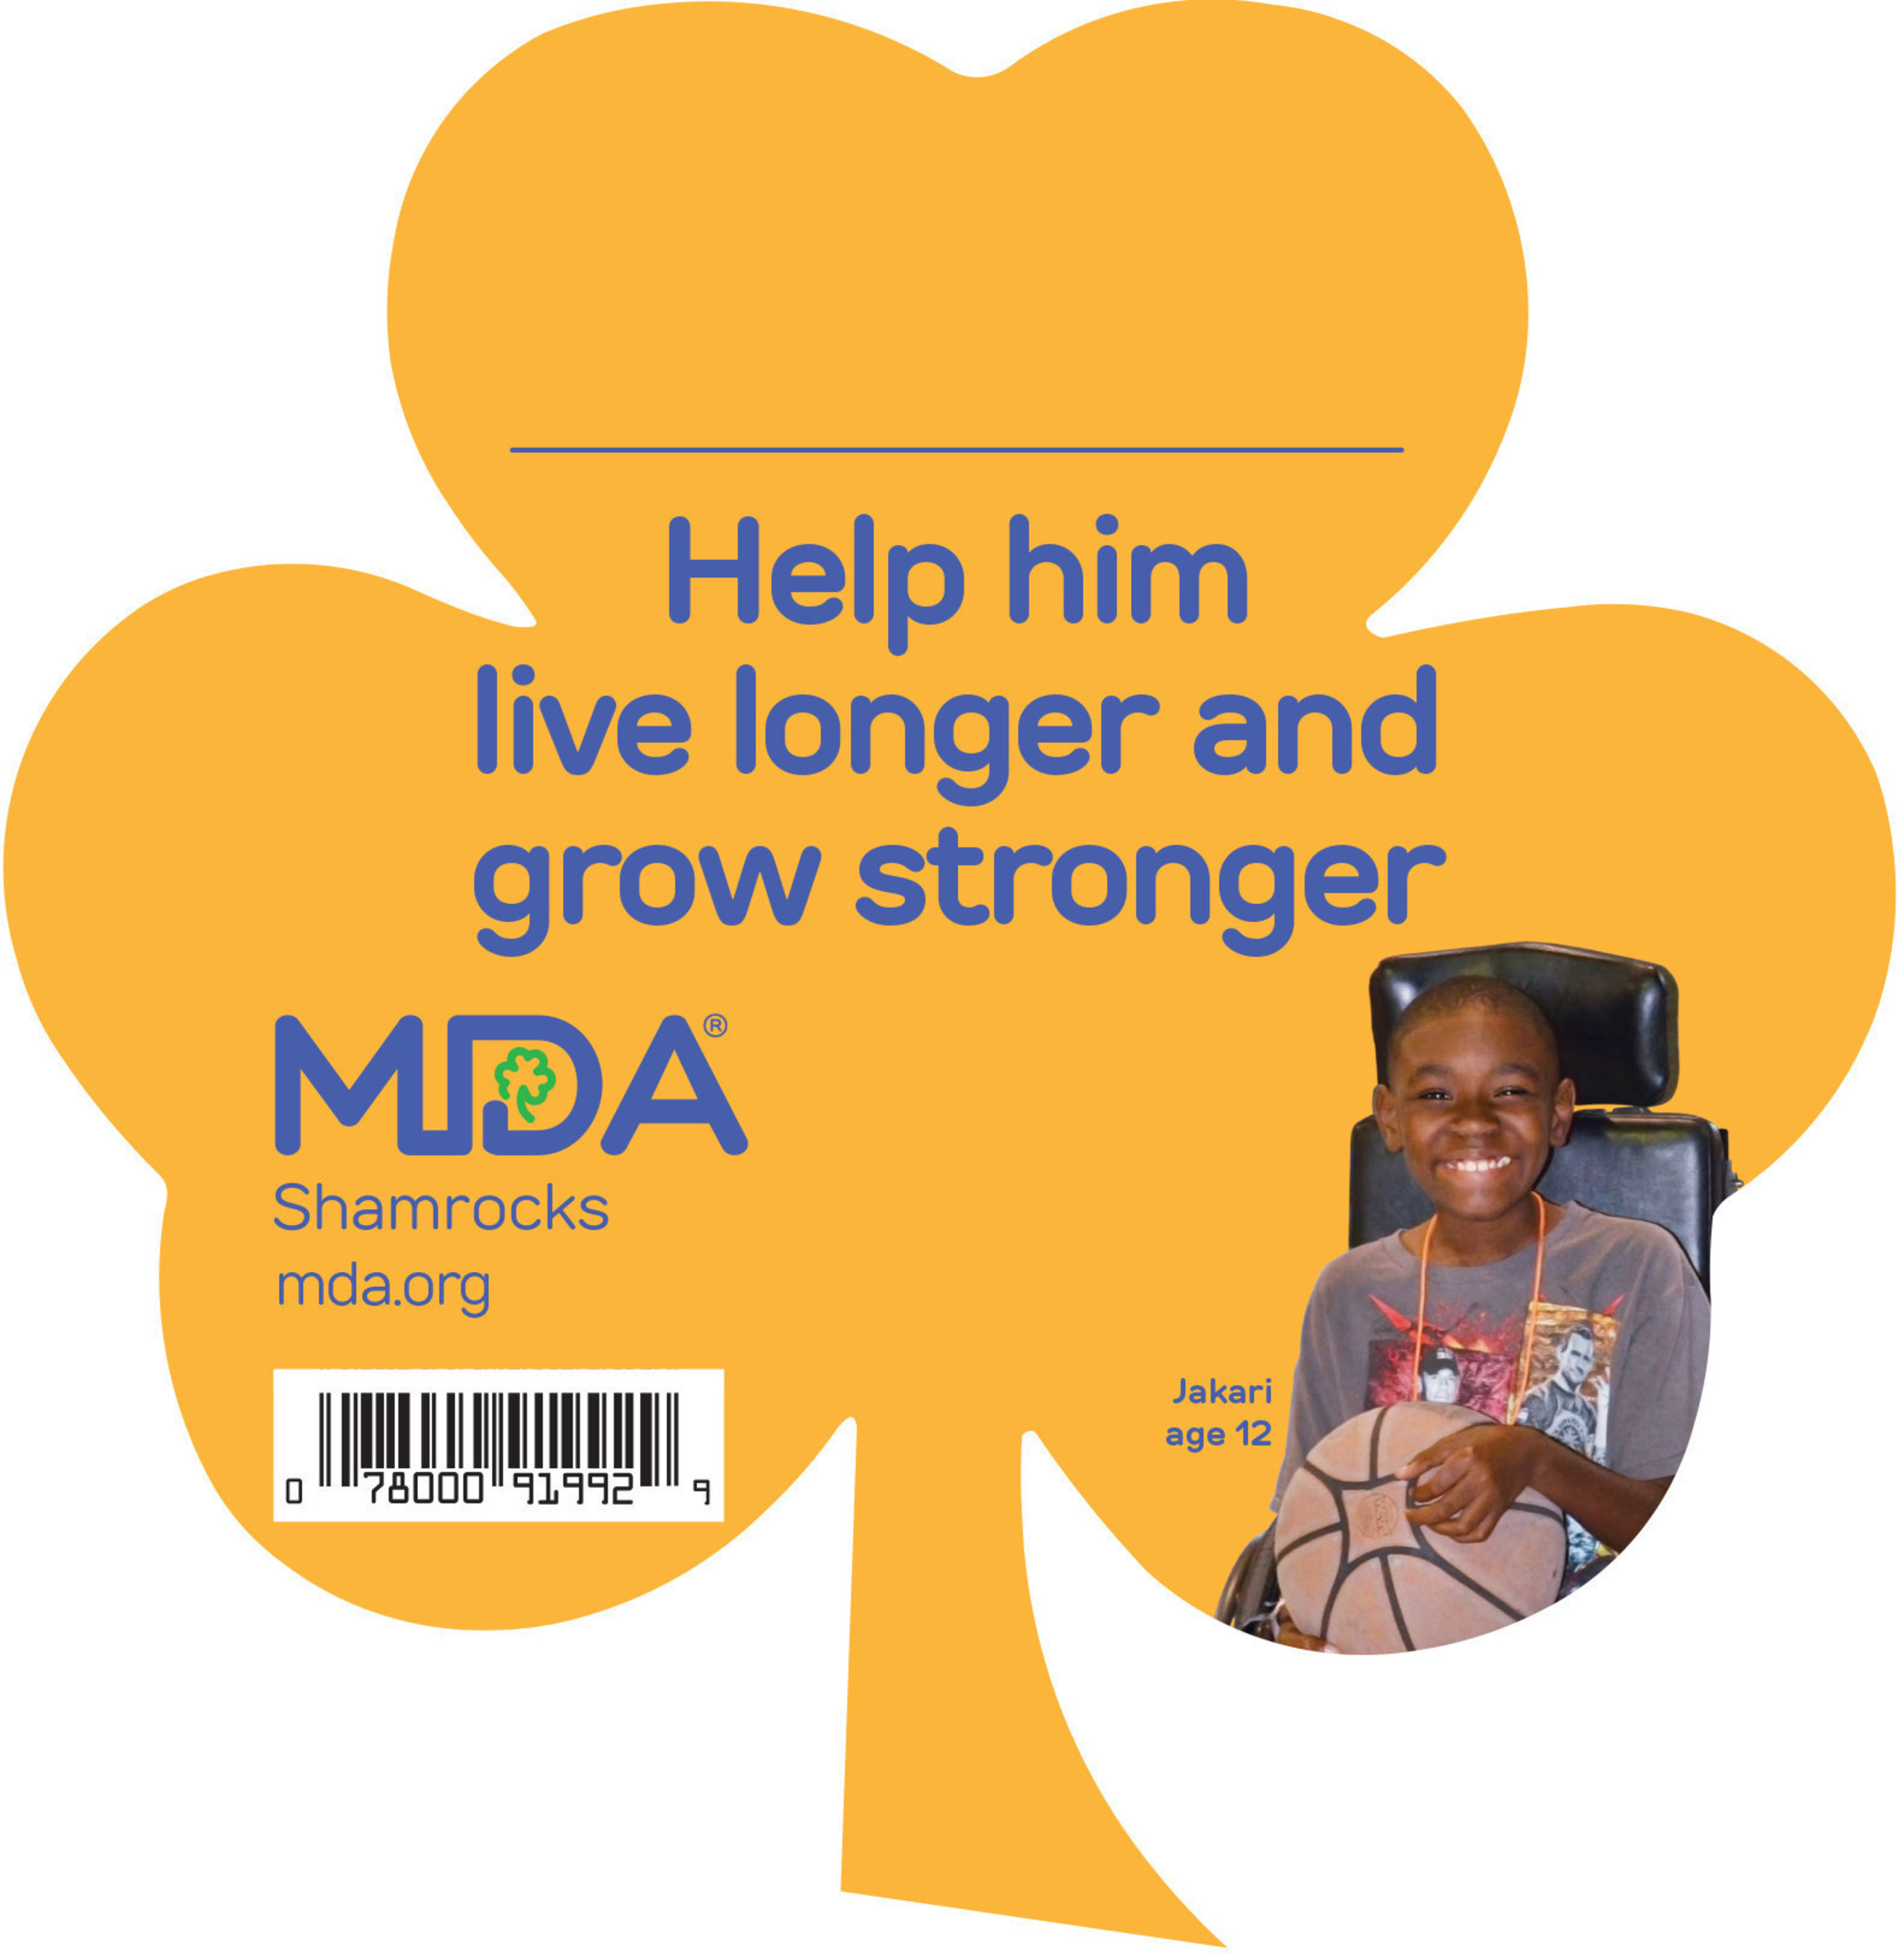 At retailers nationwide, customers and employees can help accelerate progress for individuals whose abilities to move are compromised by adding a paper Shamrock (pinup) to their purchase at checkout for just a $1, $5 or a larger contribution.